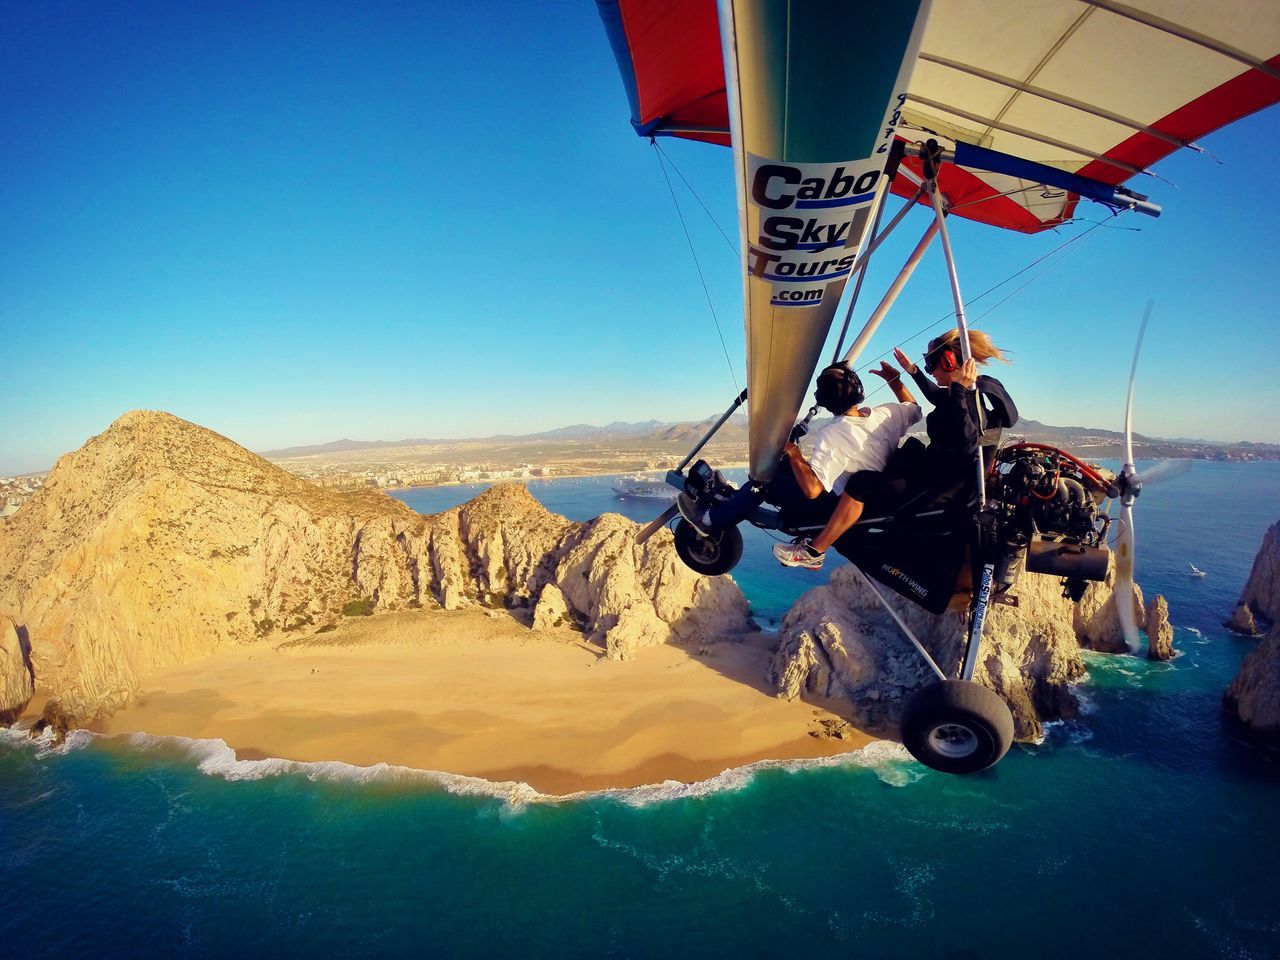 Clear Sky Real People Beauty In Nature Transportation Outdoors Adventure Scenics Landscape Cabo San Lucas Mexico Bajacalifornia Sportextreme Adventure Time Togetherness Travel Determination Adrenaline Adrenaline Junkie Fly Away Skydiving LosCabos Horizon Over Water Beach Water Beauty In Nature